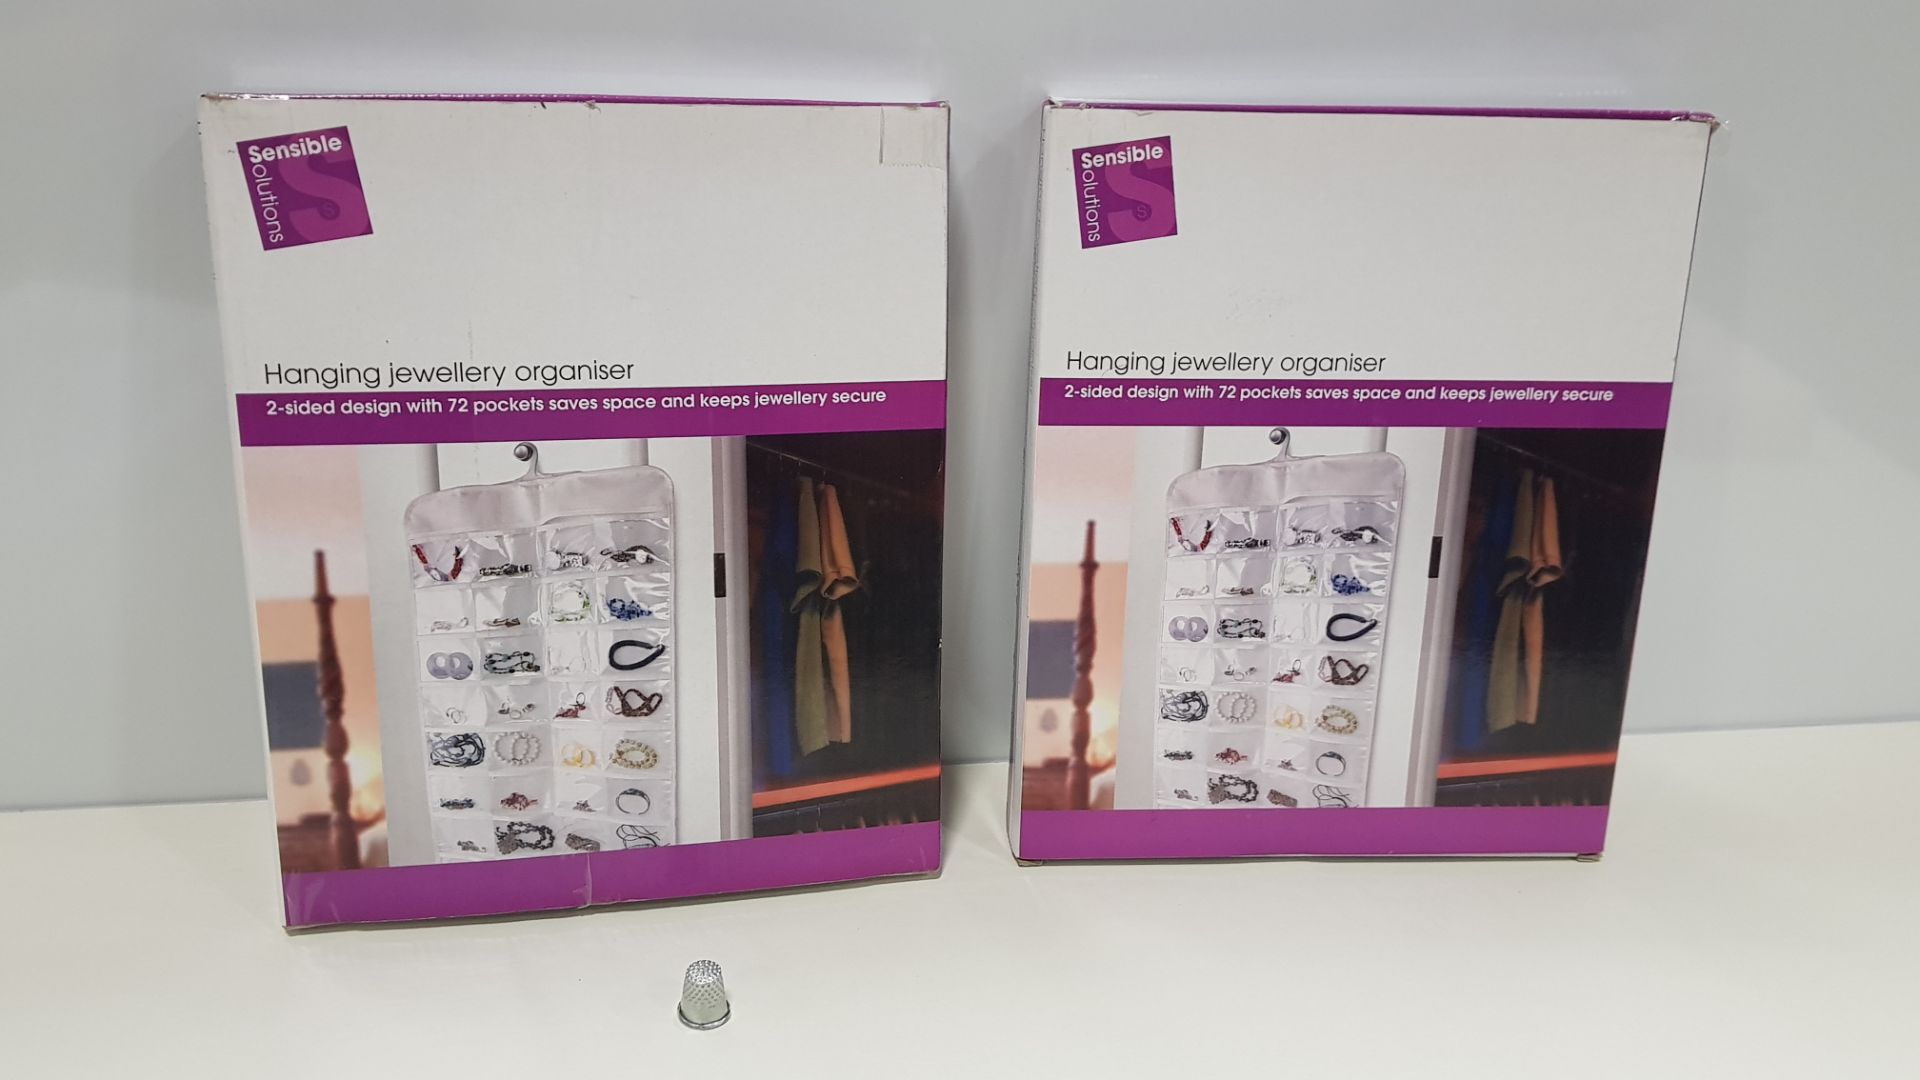 15 X BRAND NEW HANGING JEWELLRY ORGANISER- 2 SIDED DESIGN WITH 72 POCKETS